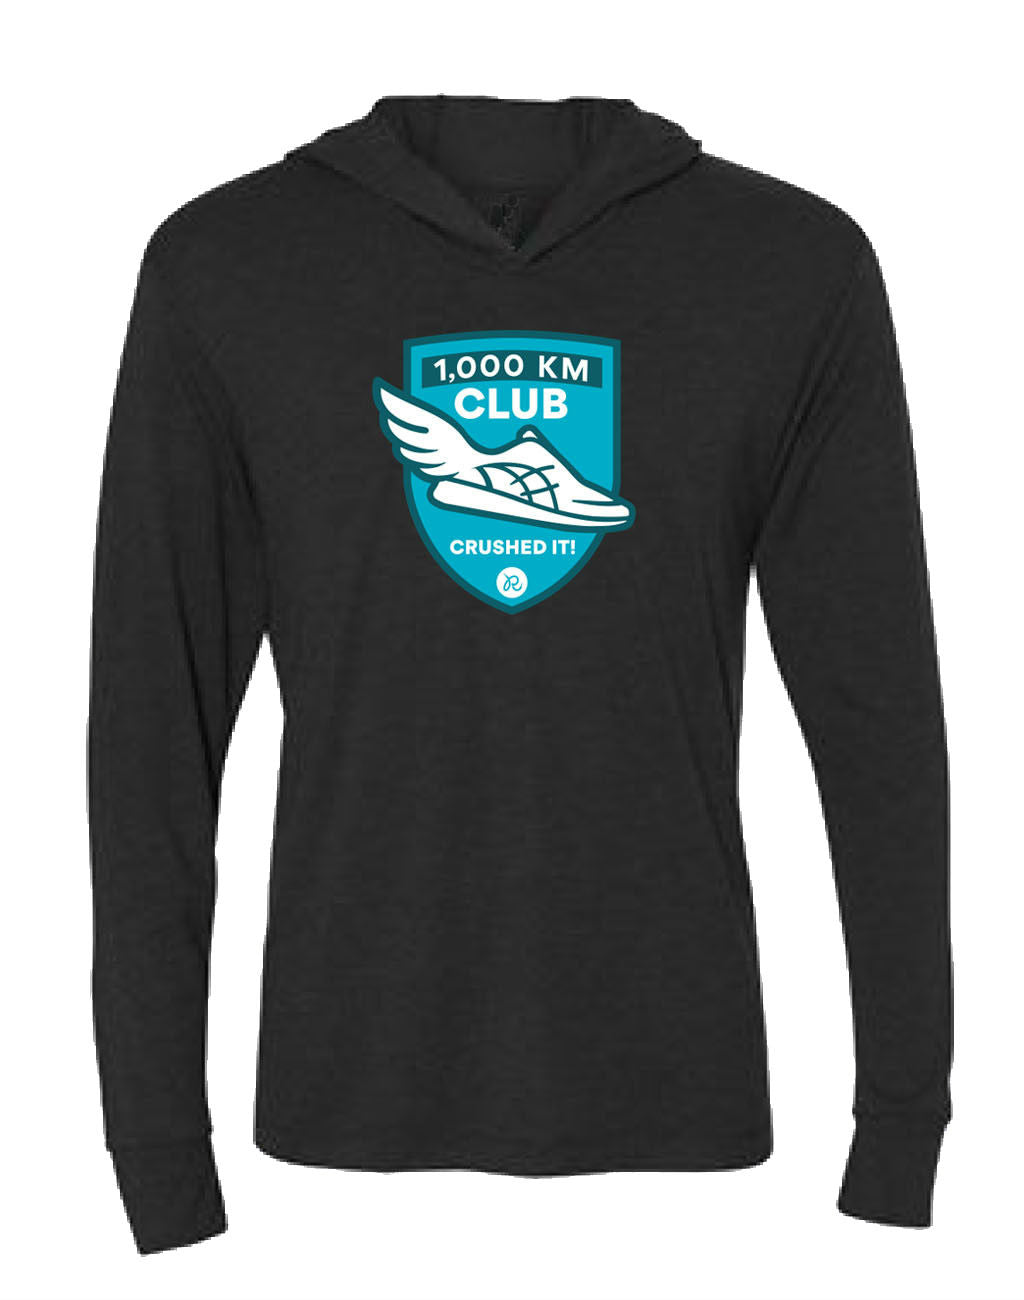 Runkeeper 1,000 KM Club Long Sleeve Tee